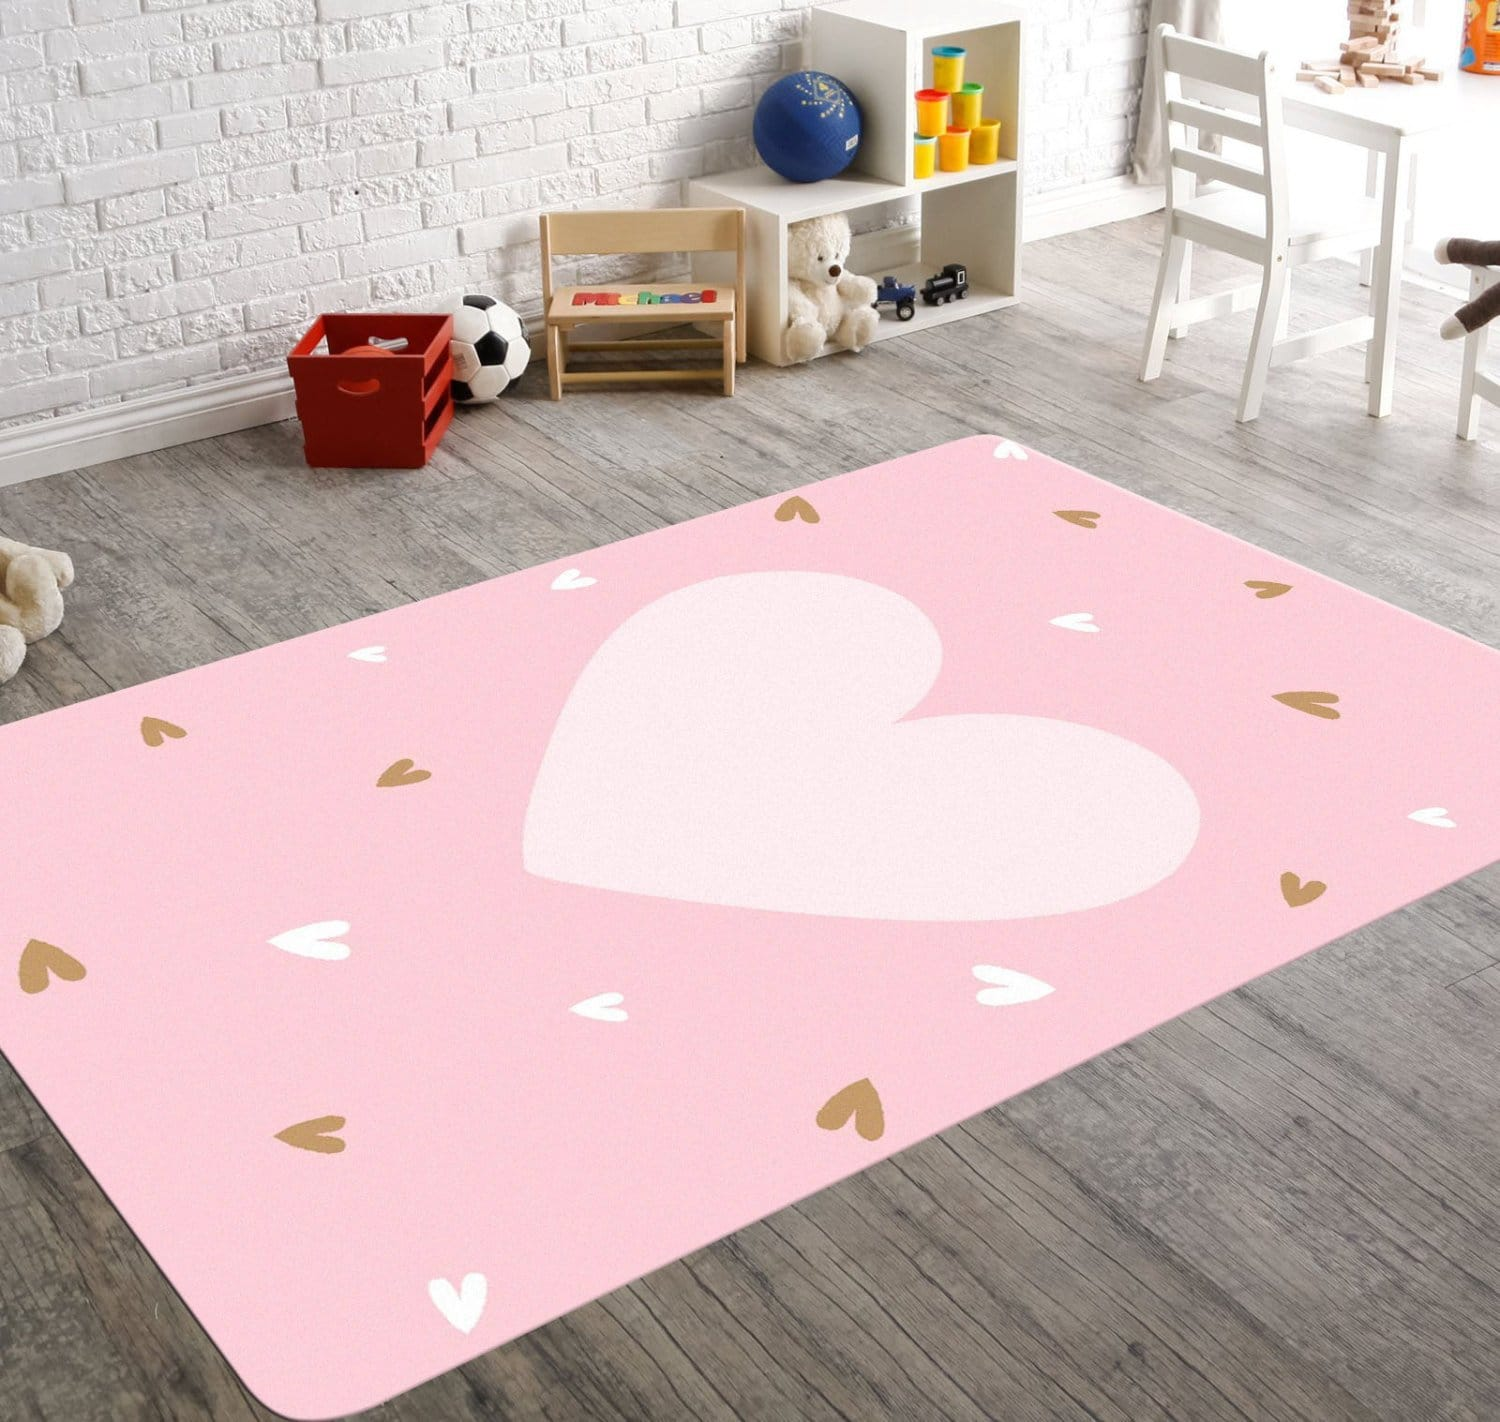 A pink nursery rug for your little girl with a big pale heart in the center. The rug also has small pale pink and gold hearts sprinkled all over the rug.